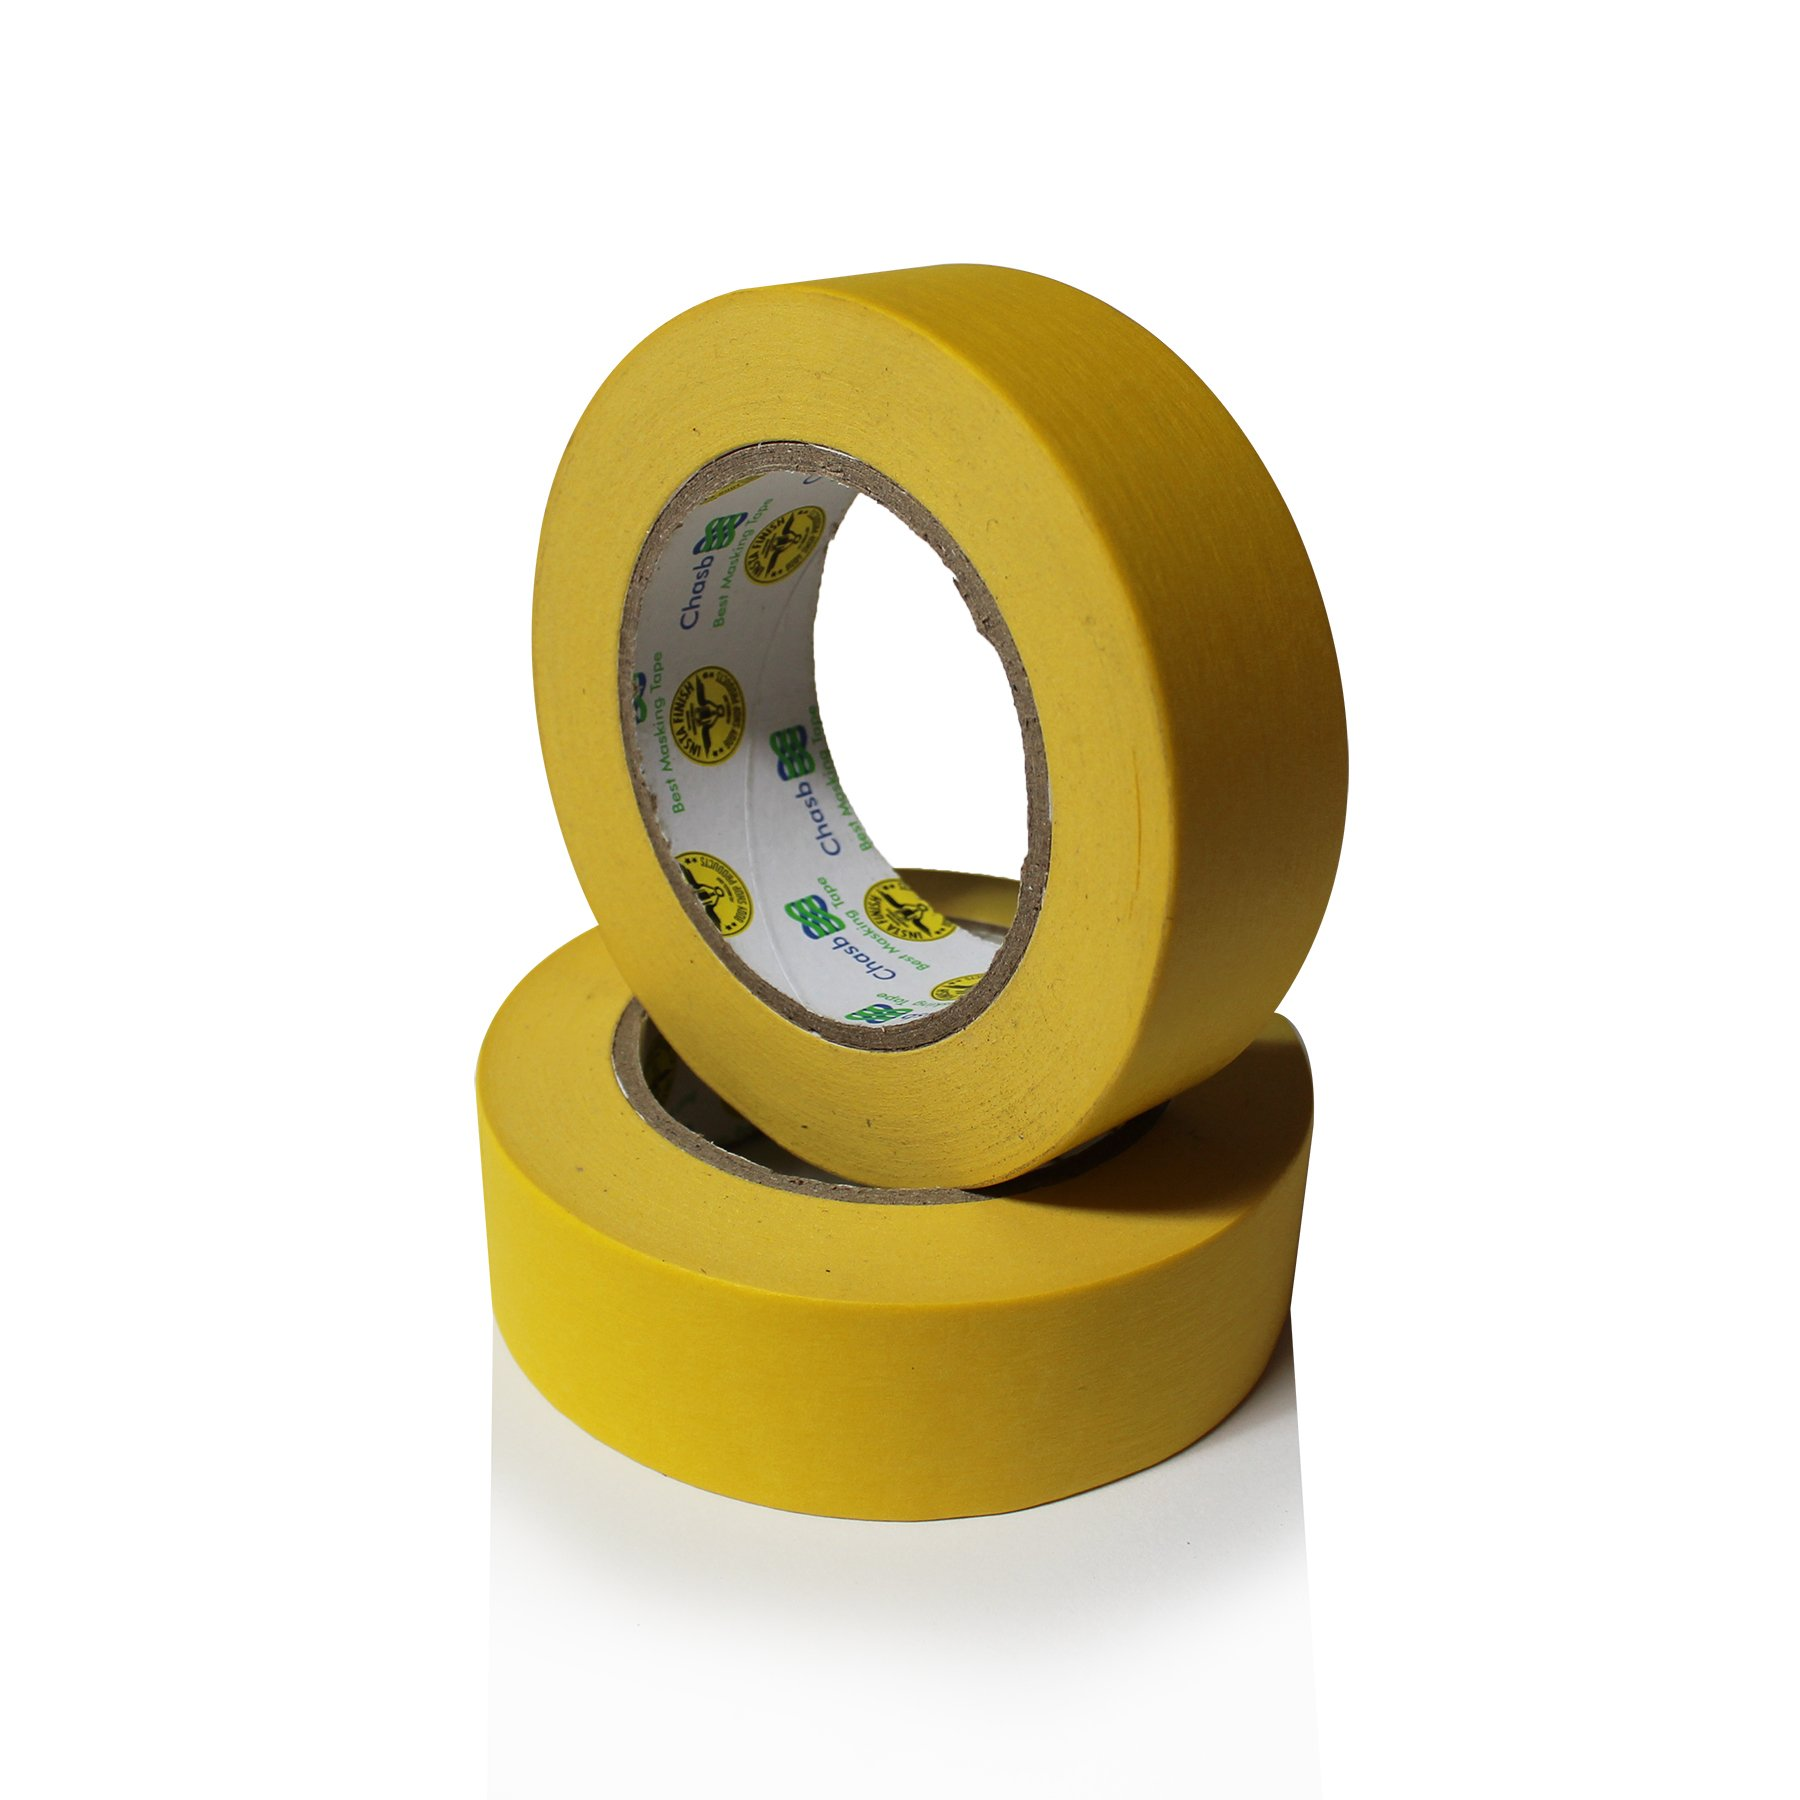 Insta Finish Performance Yellow Masking Tape (1.5 inch x 60 yards) 1 Case of 24 Rolls - Crepe Paper Industrial Grade - Easy Release Auto Body Tape 1.5'' by Insta Finish